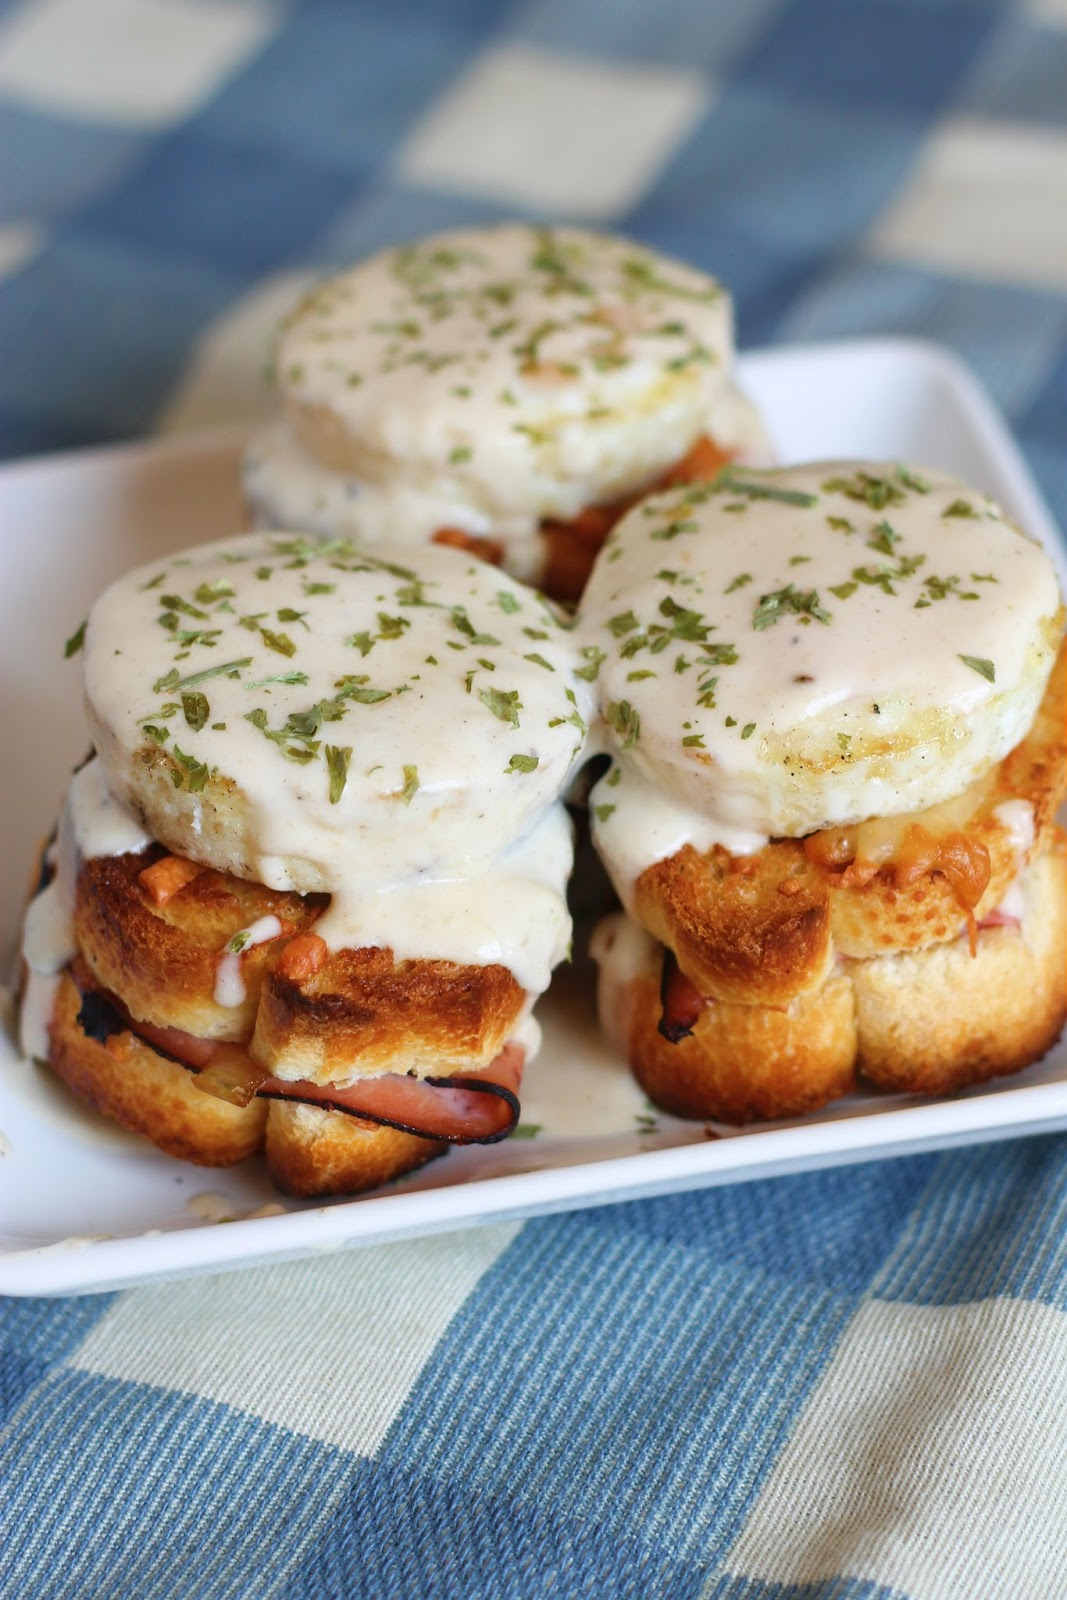 Forking Up: #EasterWeek Win a $200 gift card! - Mini Croque Madames